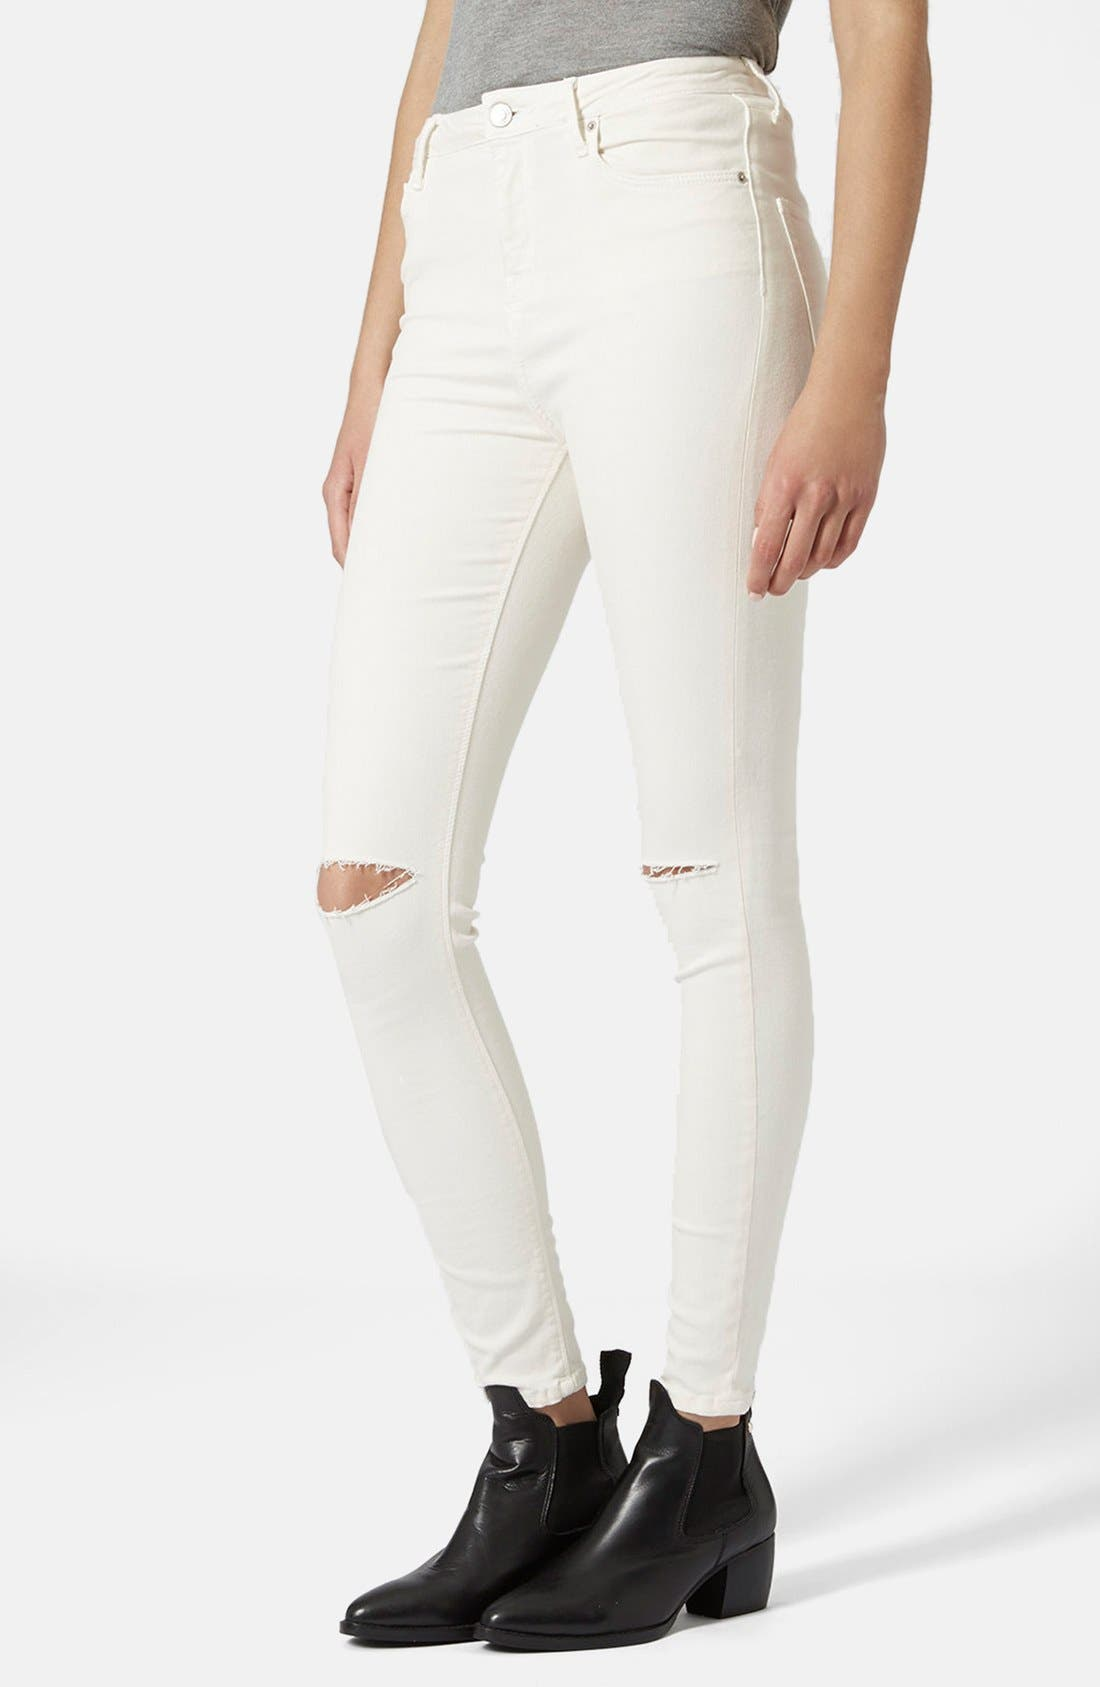 Main Image - Topshop Moto 'Jamie' Ripped Jeans (White)